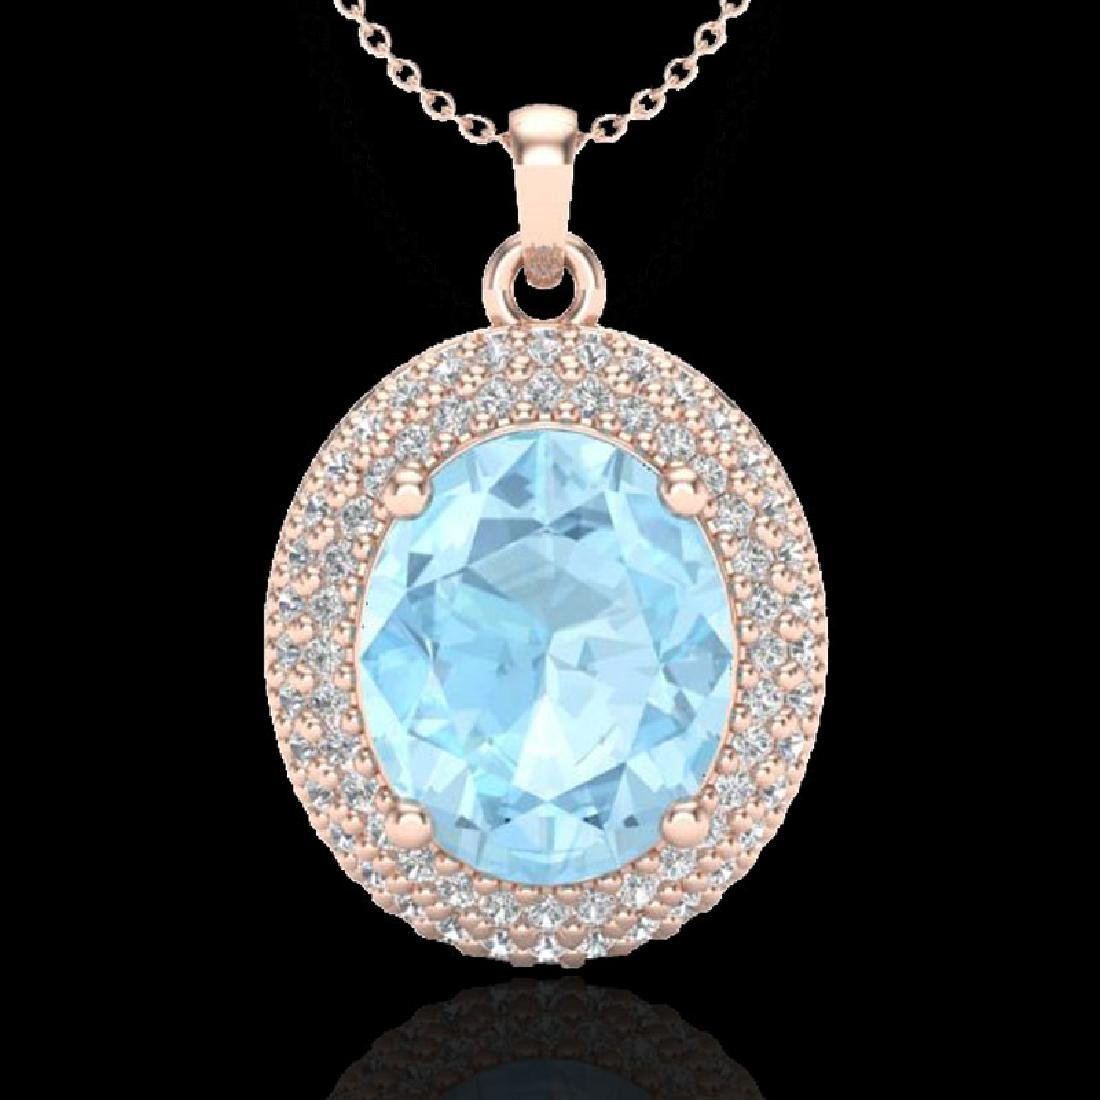 4 CTW Aquamarine & Micro Pave VS/SI Diamond Necklace